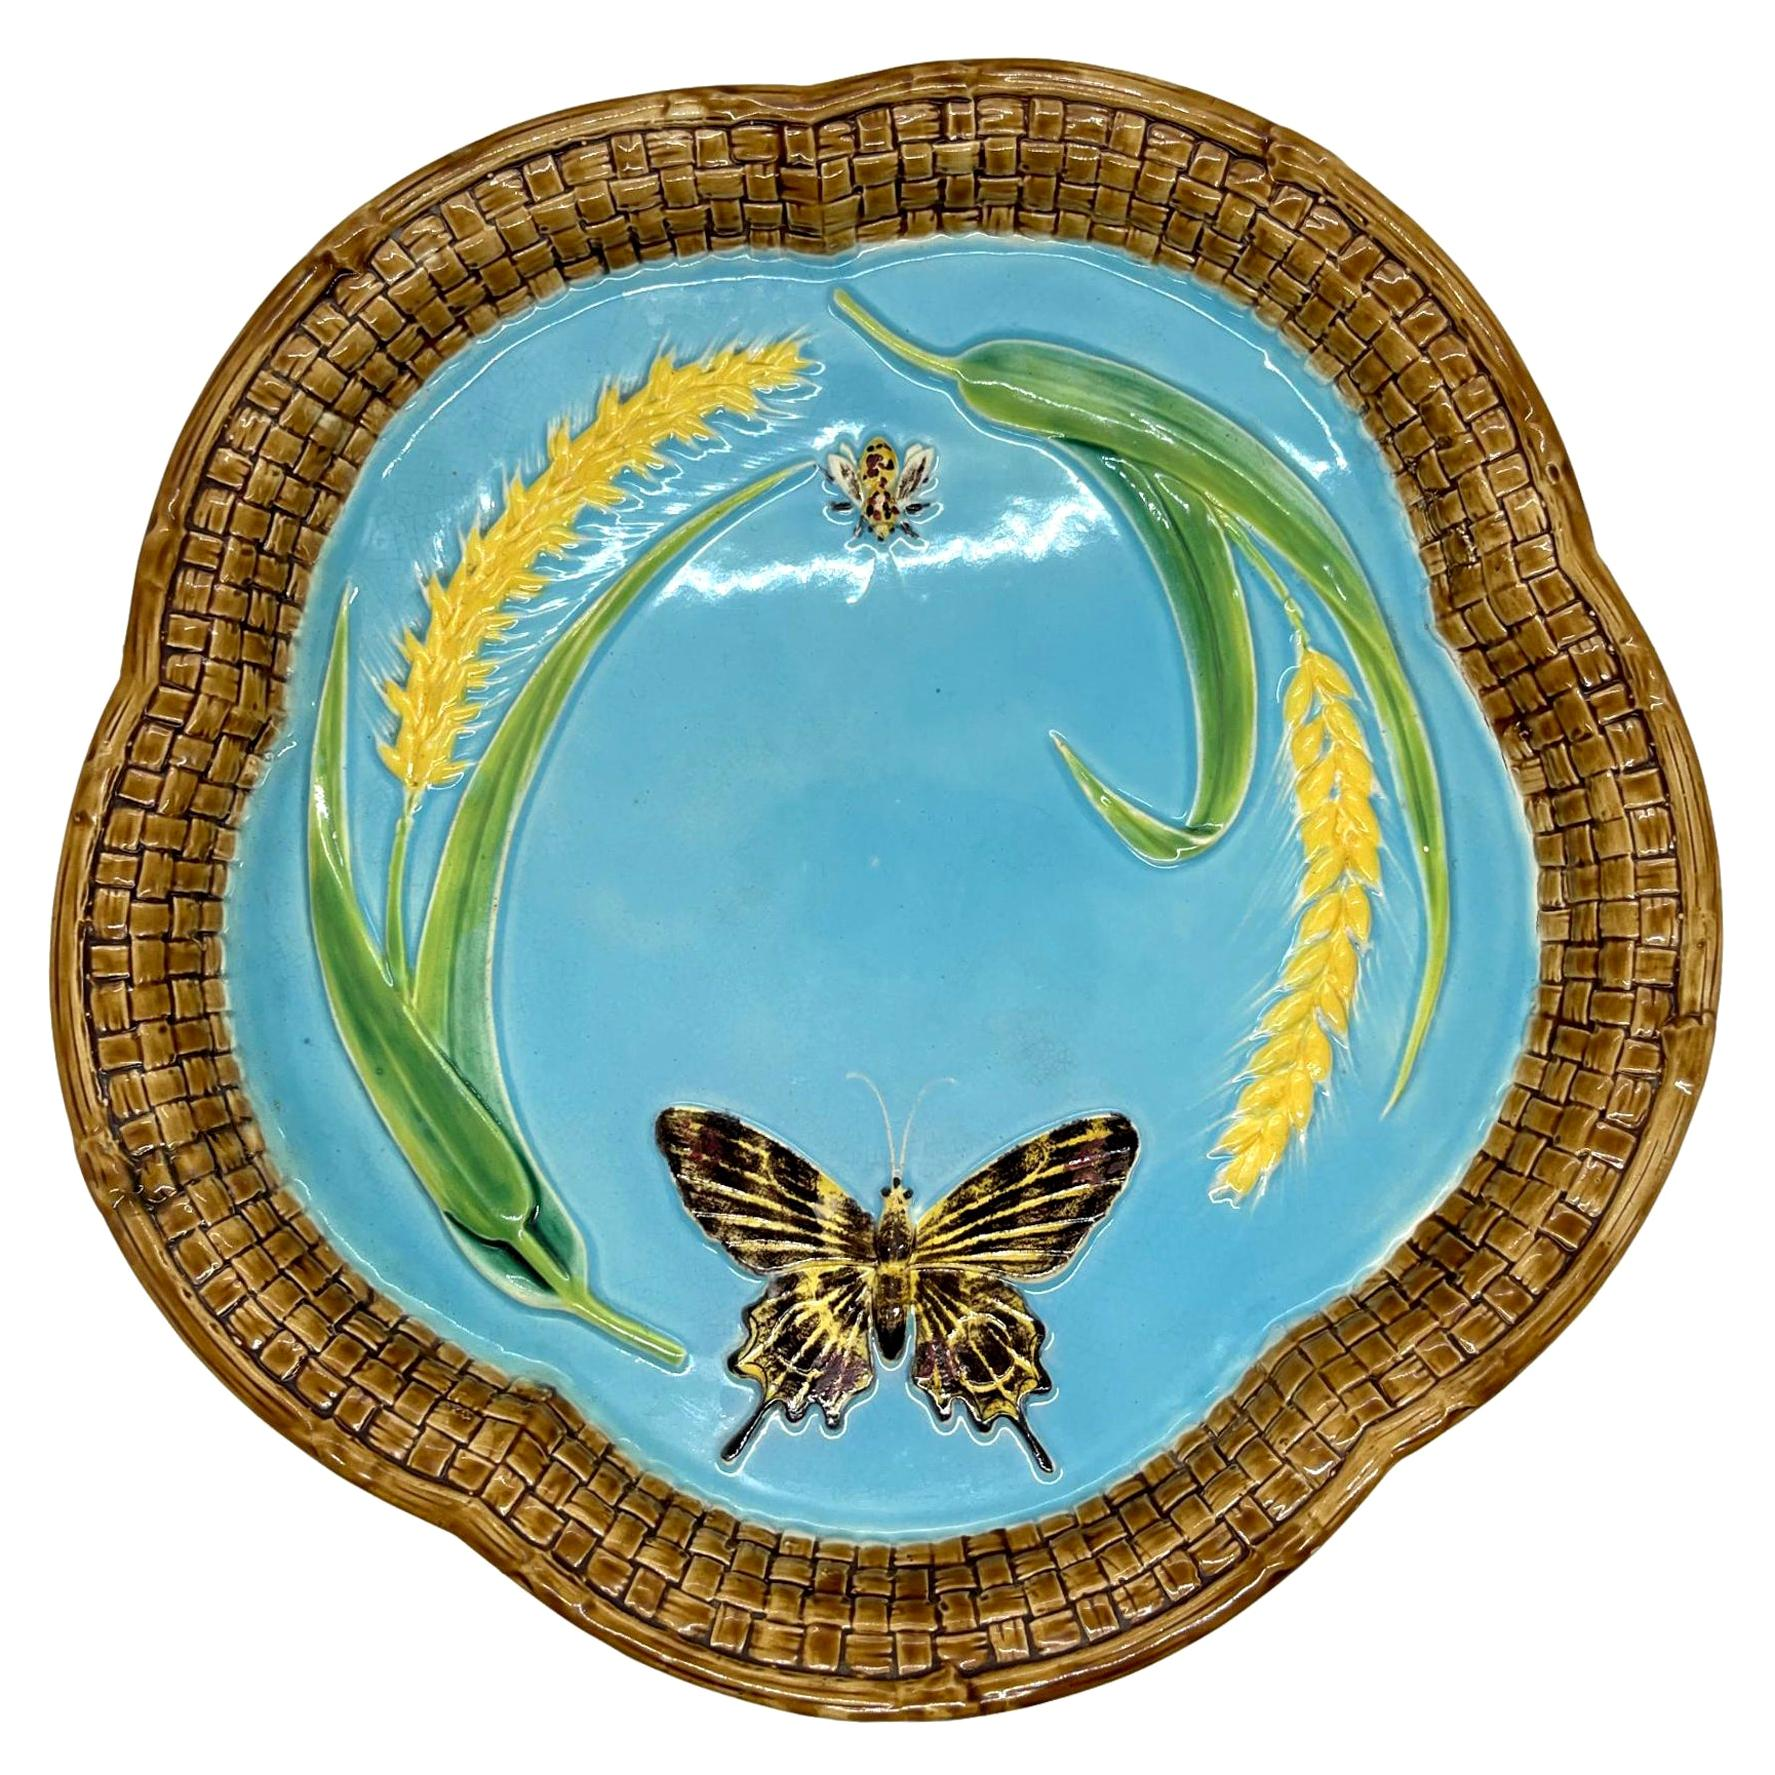 George Jones Majolica Bread Platter, with Butterfly, Bee, and Wheat, Dated 1877